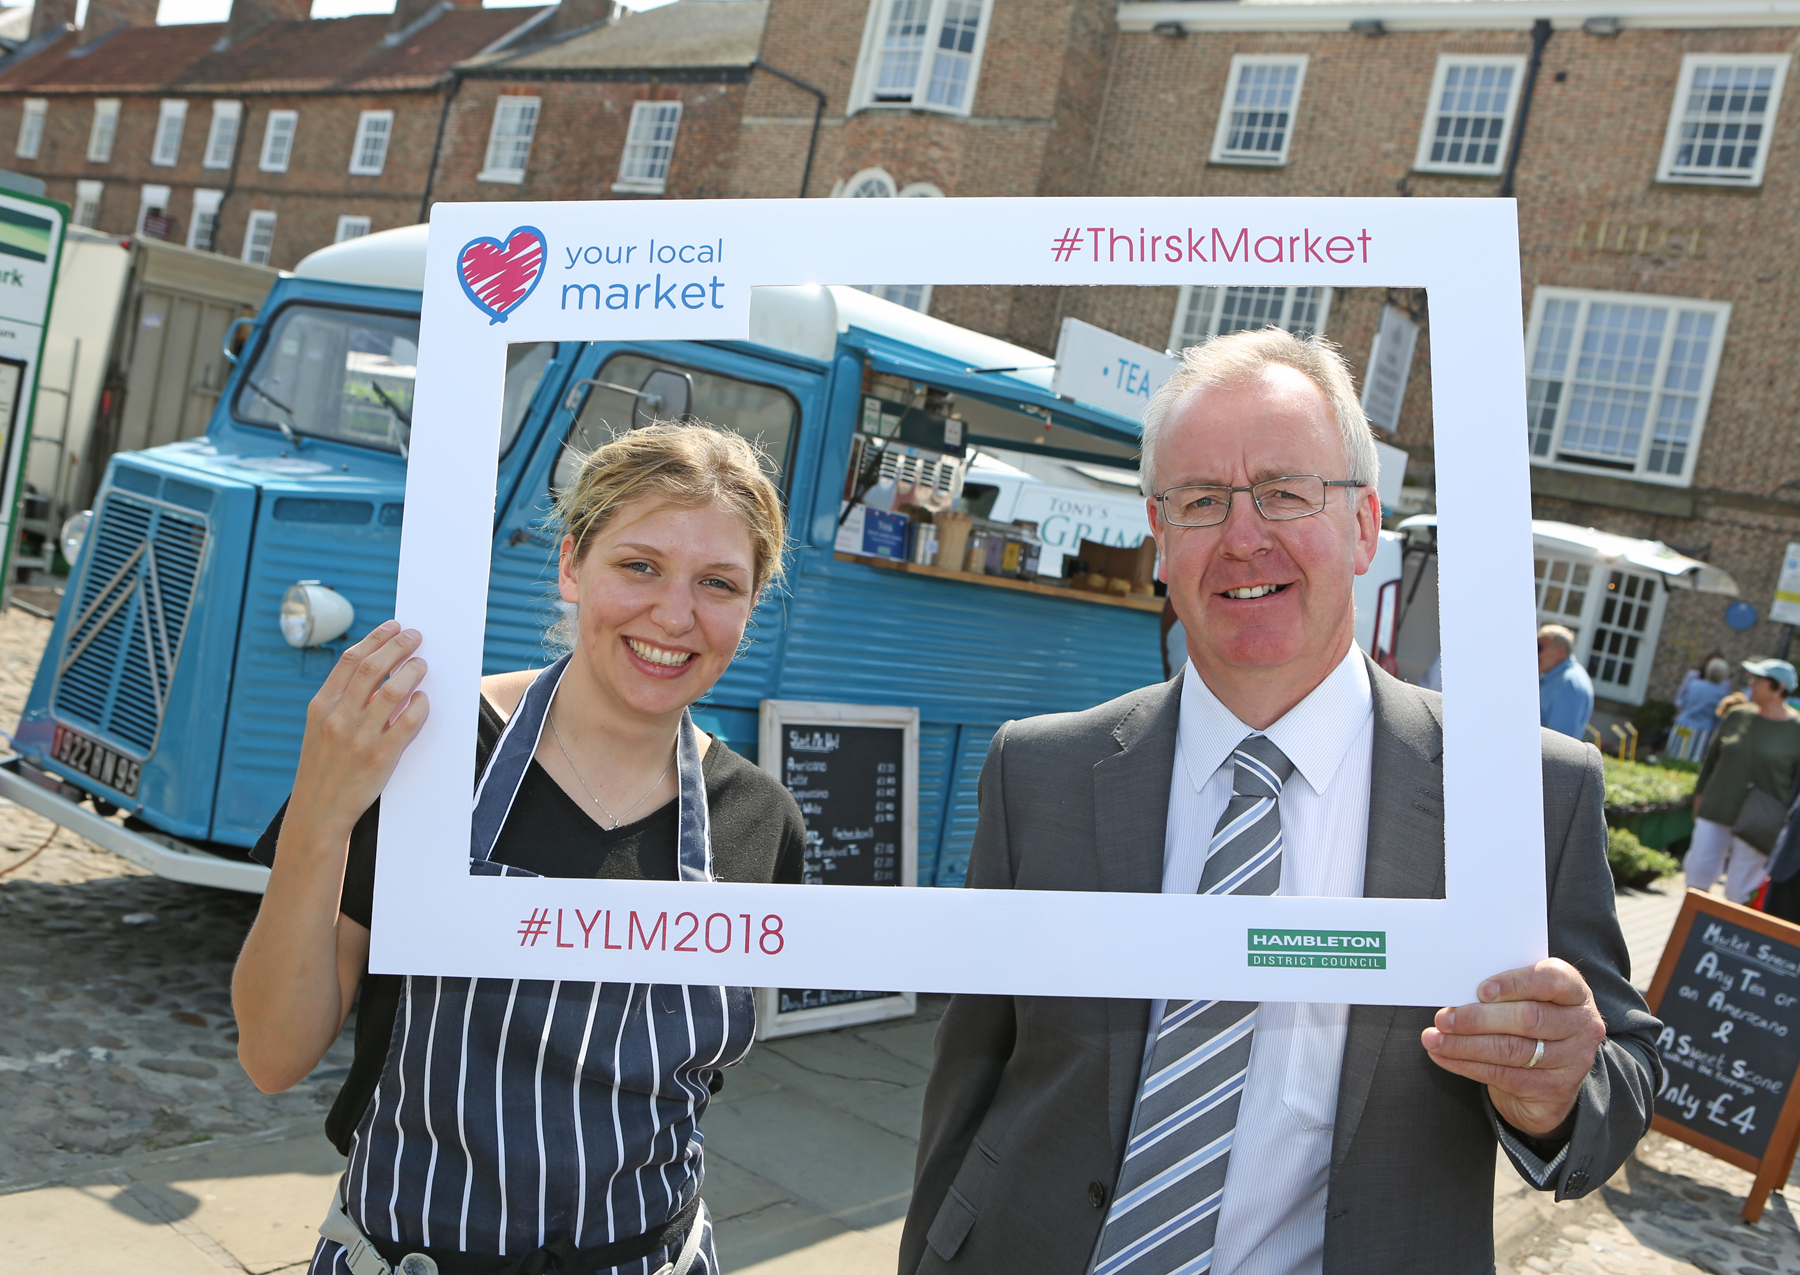 Councillor Robson is pictured with Thirsk trader, Rosa Fothergill of Tea Time Yorkshire